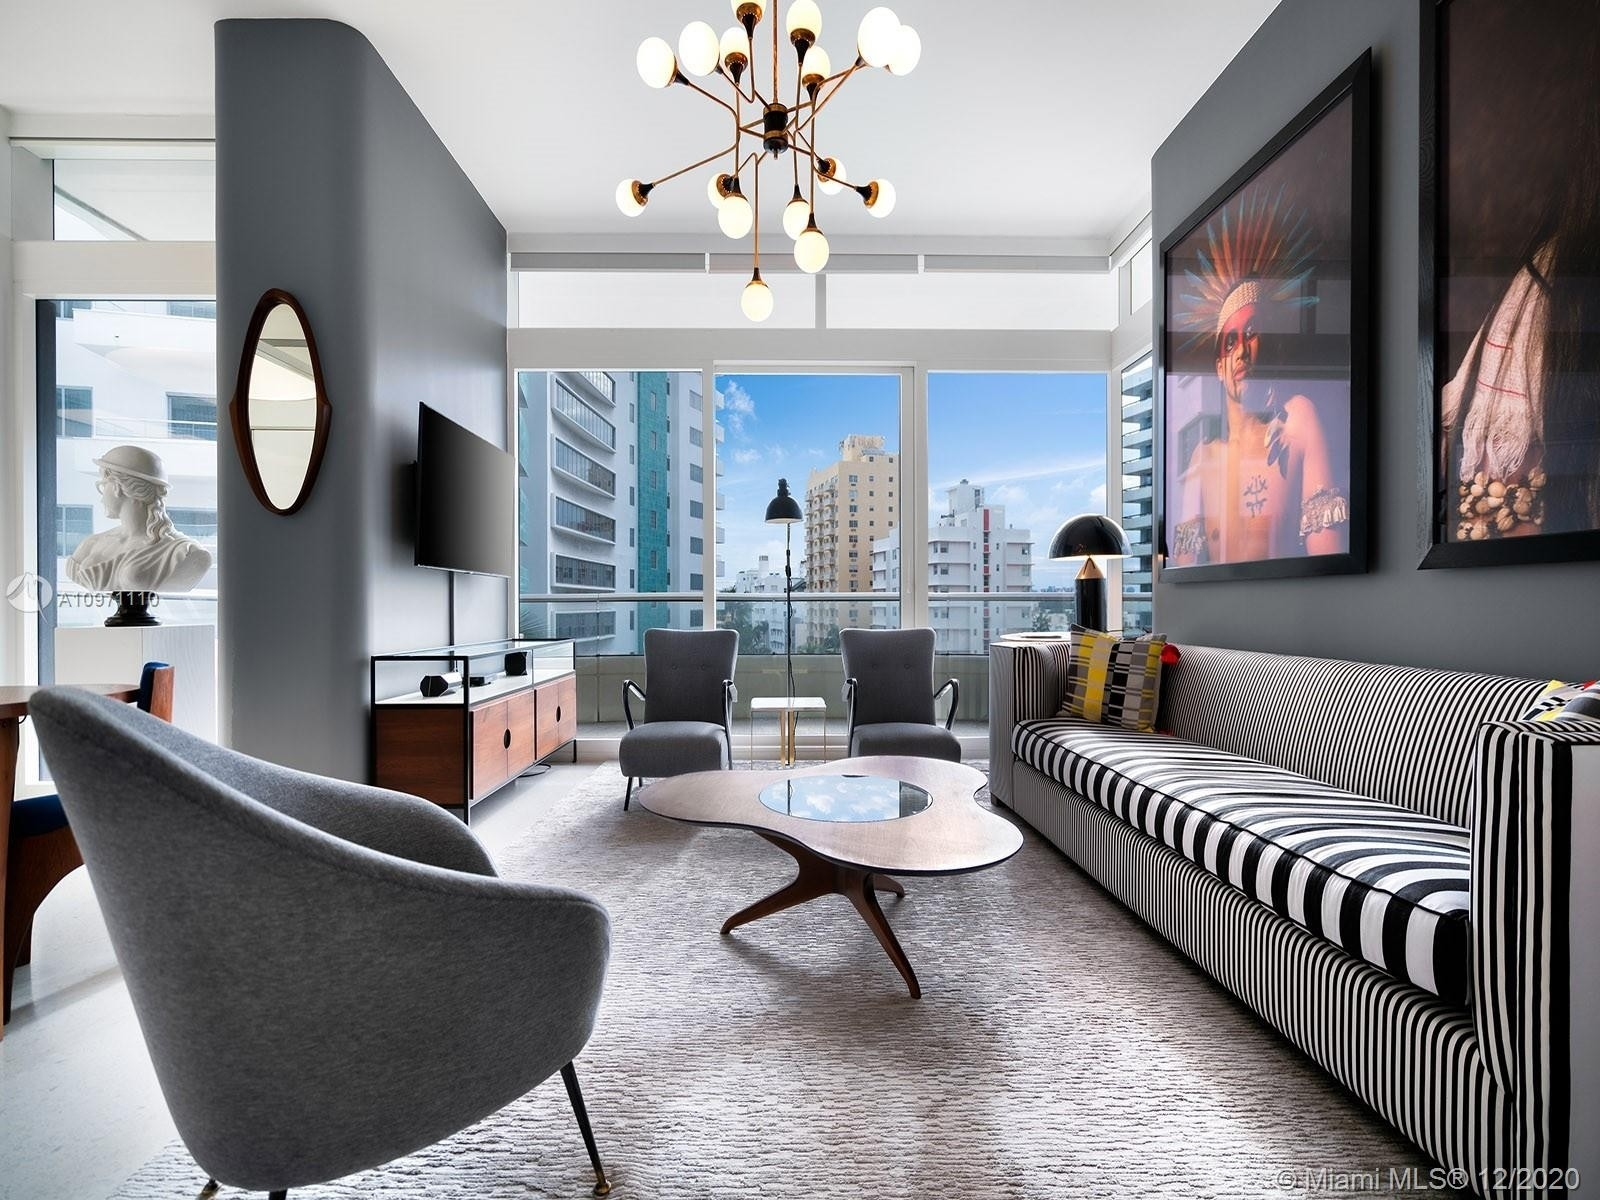 Condominium at 3315 Collins Ave , 5D Miami Beach